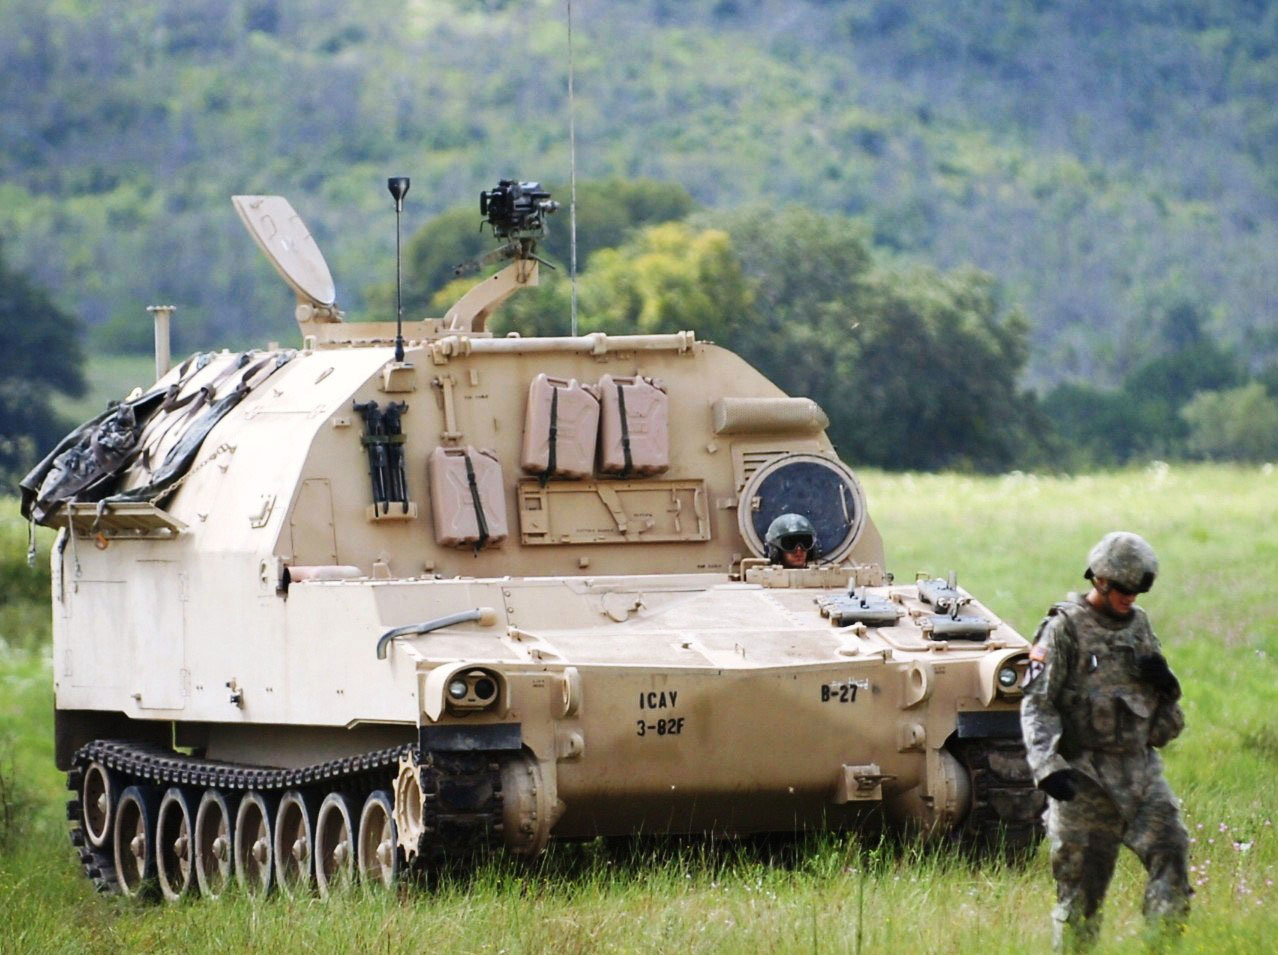 FORT HOOD, Texas— Artillerymen from B. Battery, 3rd Battalion, 82nd Field Artillery Regiment, 2nd Brigade Combat Team, 1st Cavalry Division, move a M992A2 Field Artillery Ammunition Supply Vehicle across the range to a M109A6 Paladin to provide support during the 3rd Bn, 82nd FA Regt.'s Paladin live-fire exercise at a range on Fort Hood, Sept. 22. (U.S. Army photo by Sgt Quentin Johnson, 2nd BCT PAO, 1st Cav. Div.)